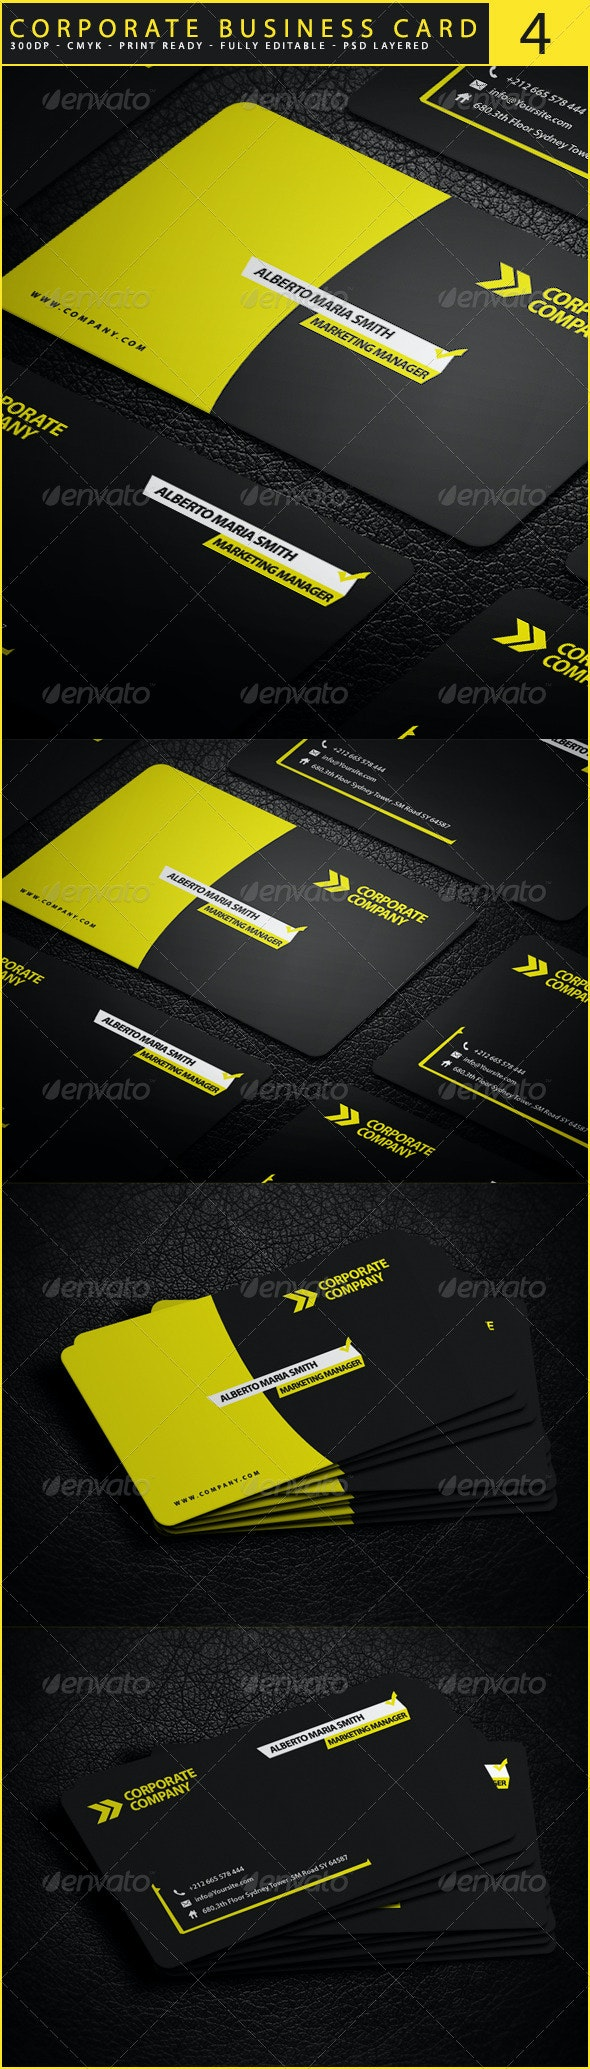 Corporate Business Card 4 - Corporate Business Cards